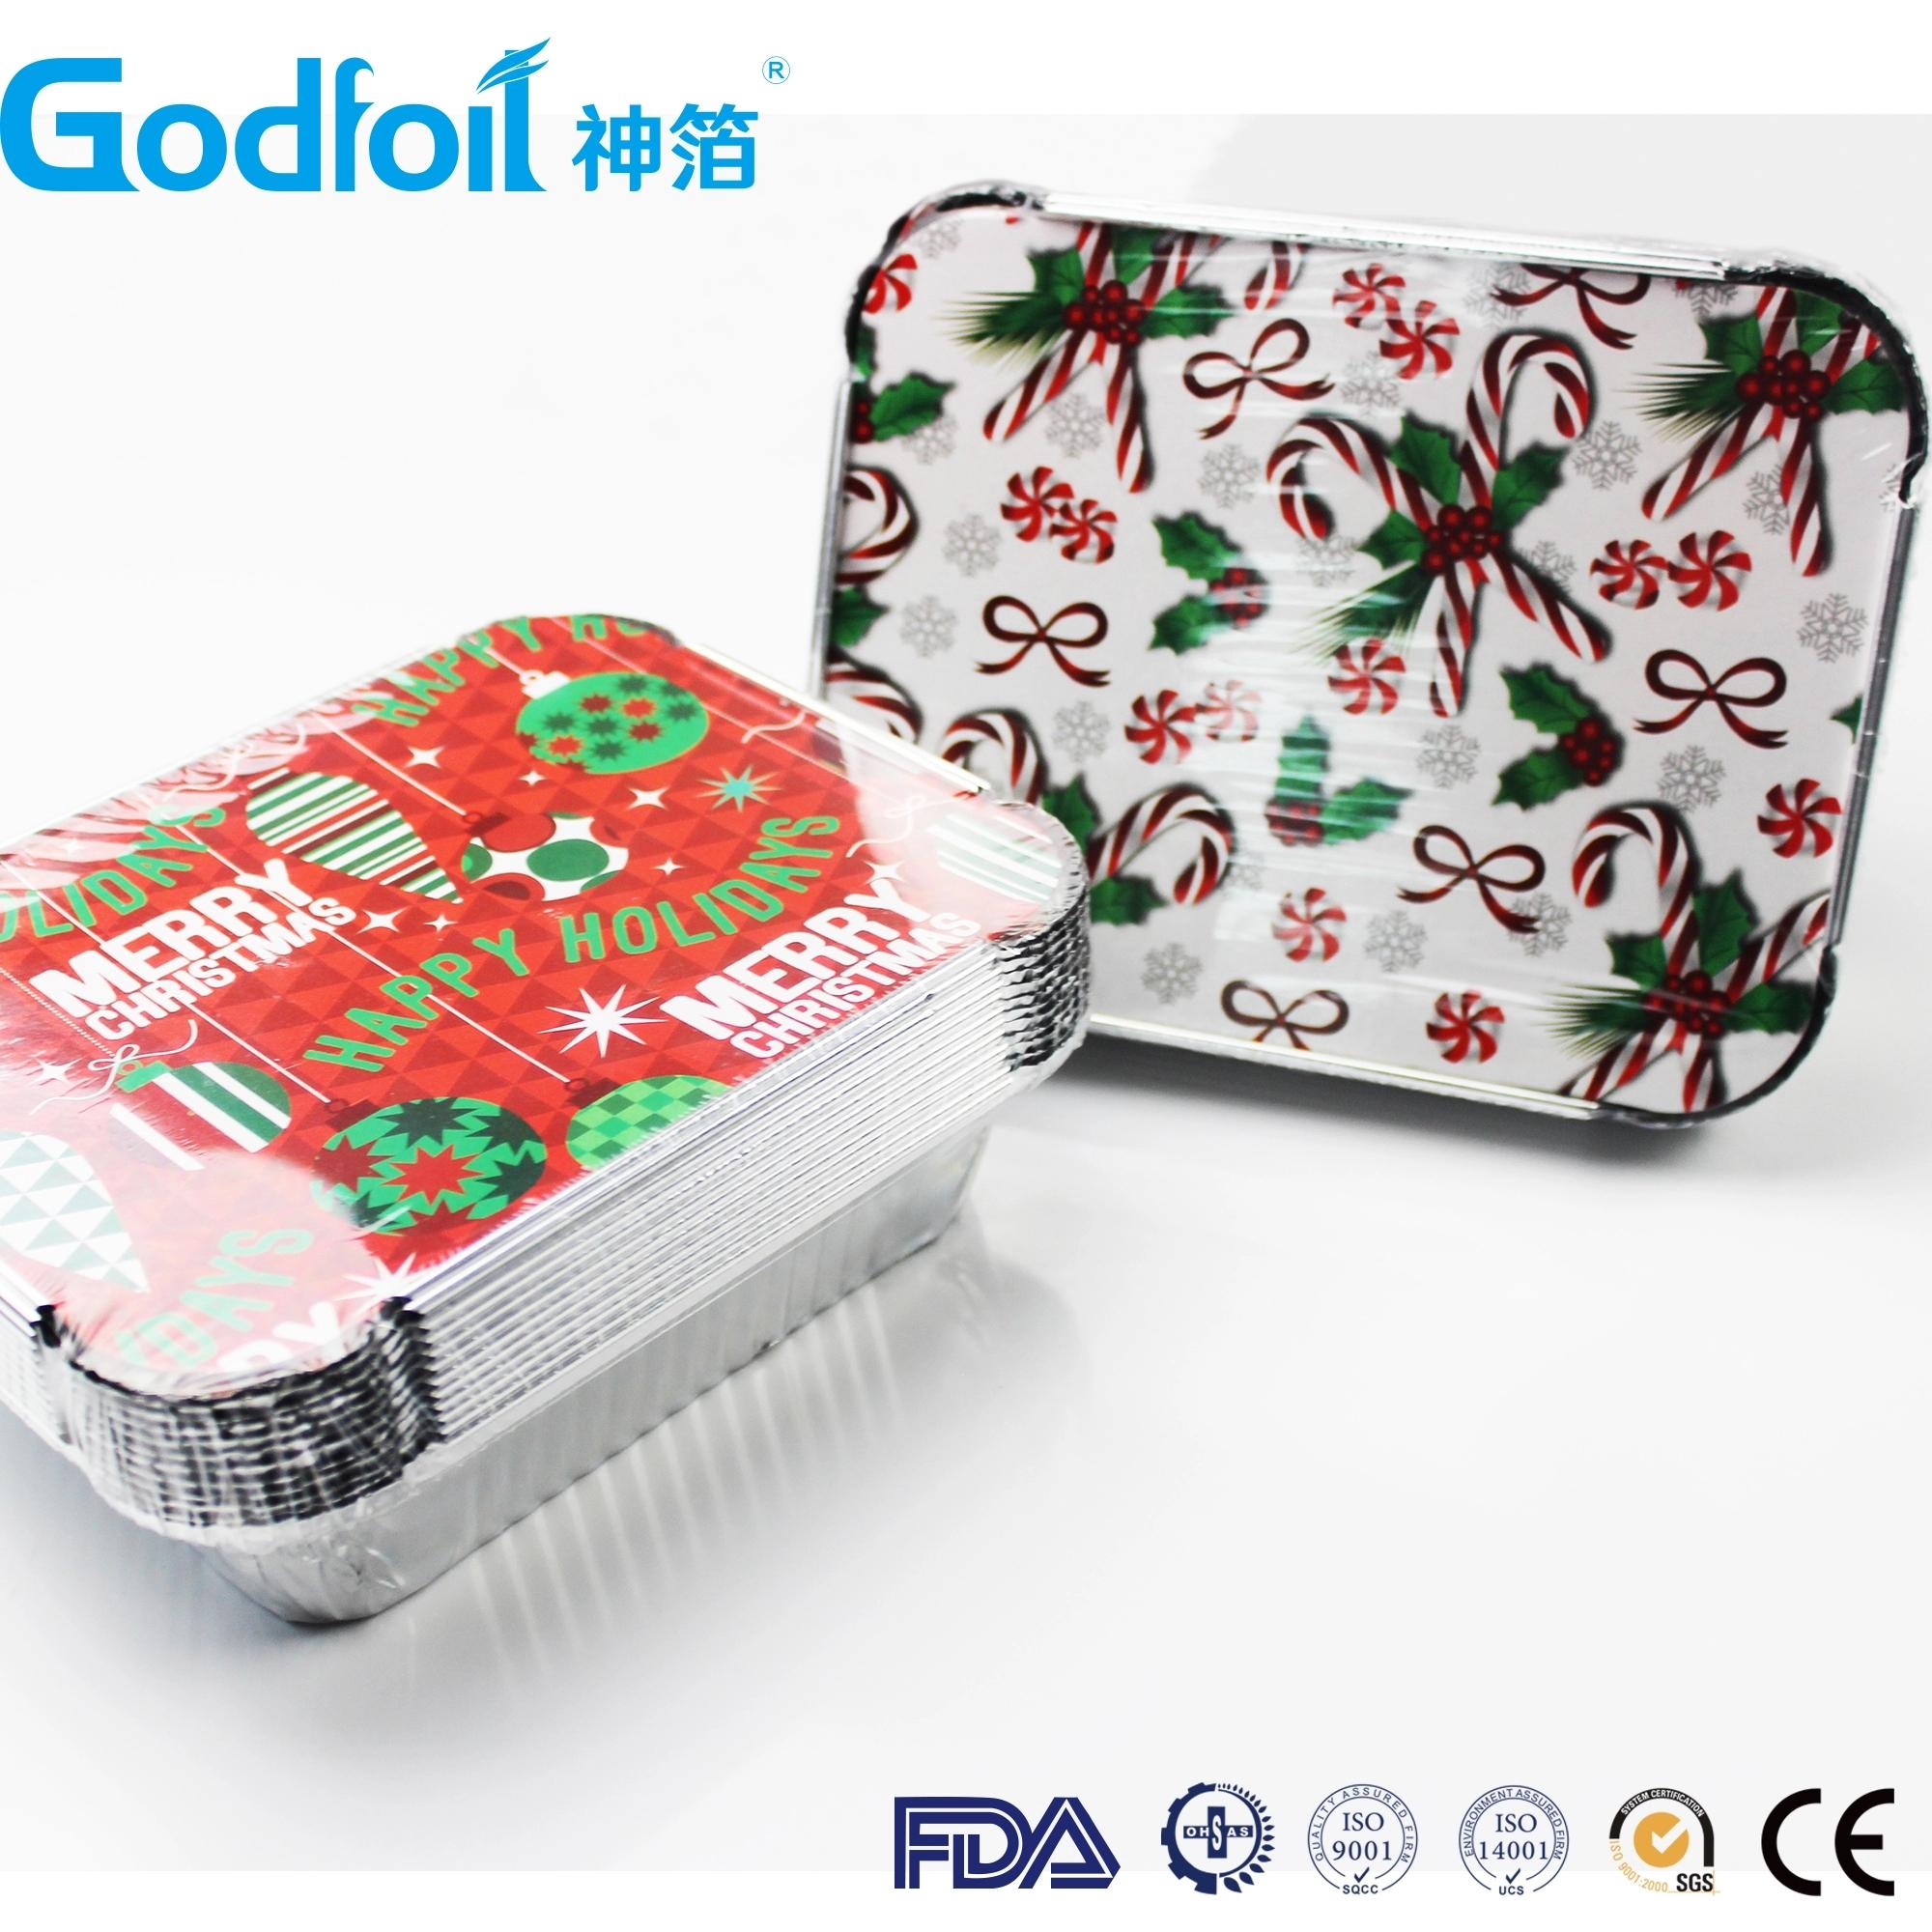 Laminated Lids For Takeaway Use Aluminum Foil Container 6